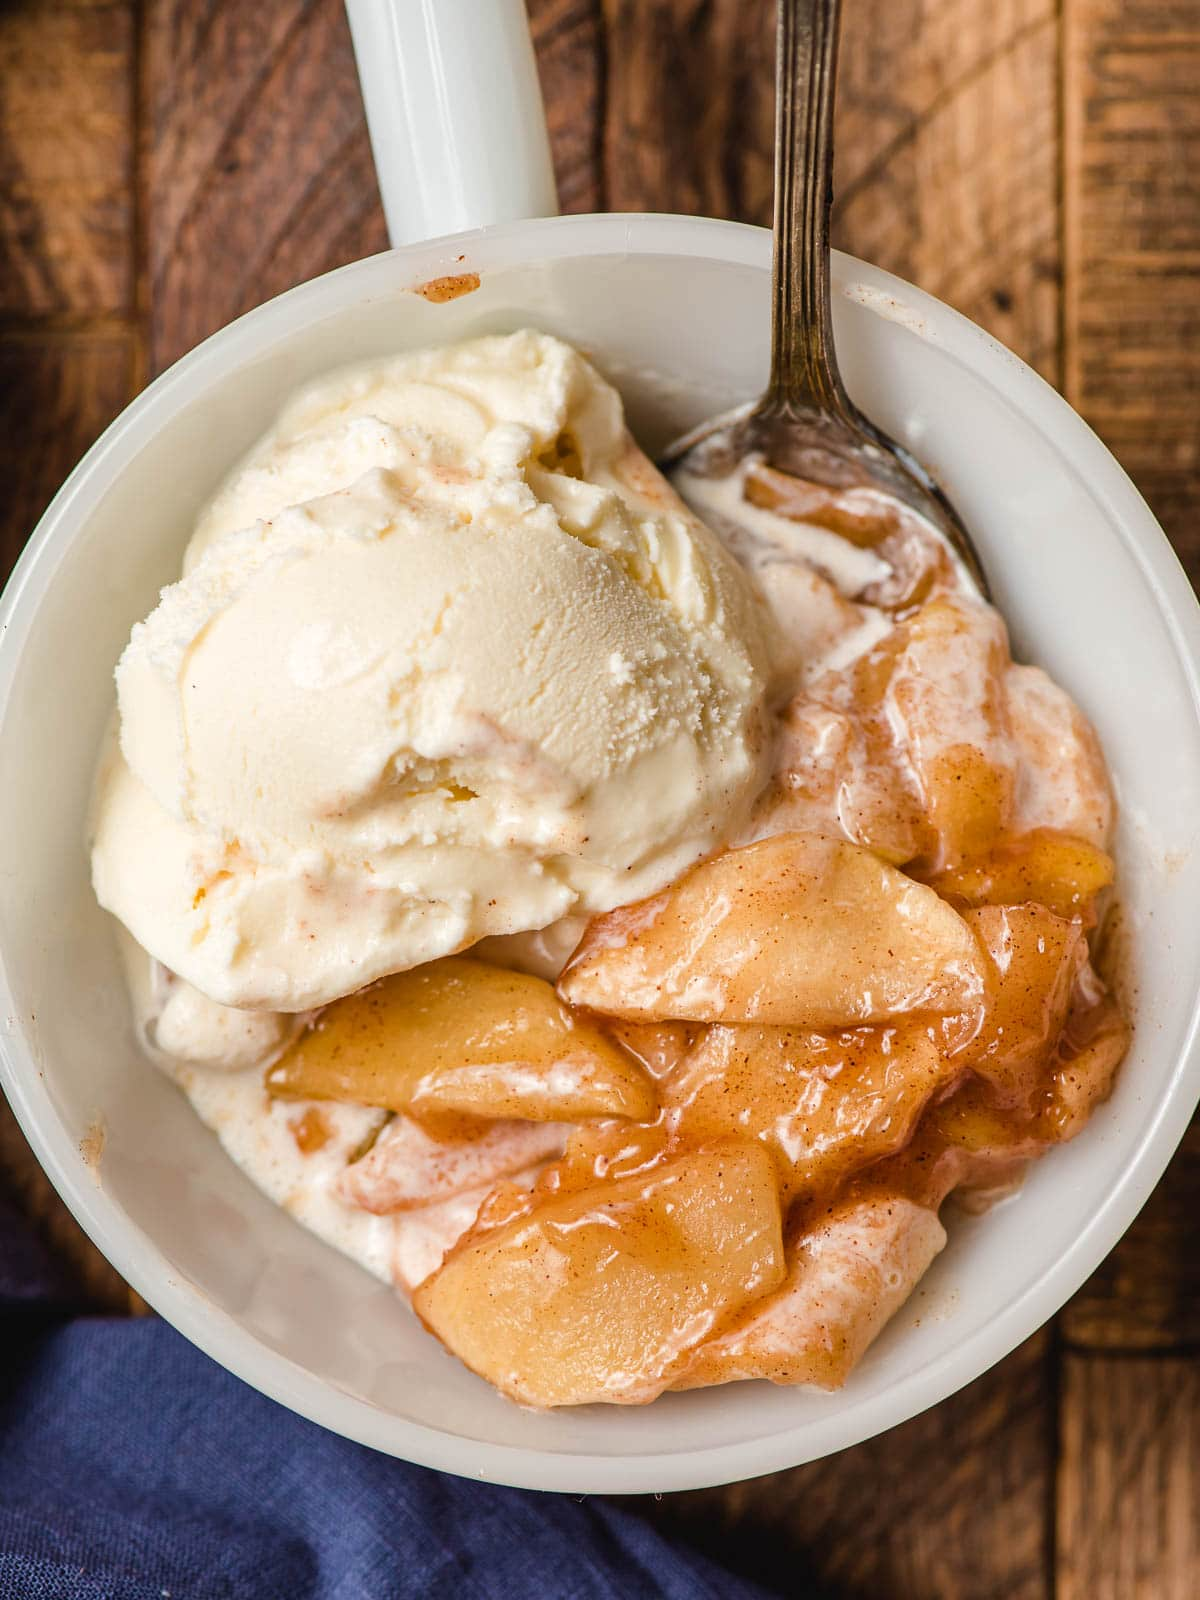 White bowl filled with warm cinnamon apples and a scoop of vanilla ice cream.